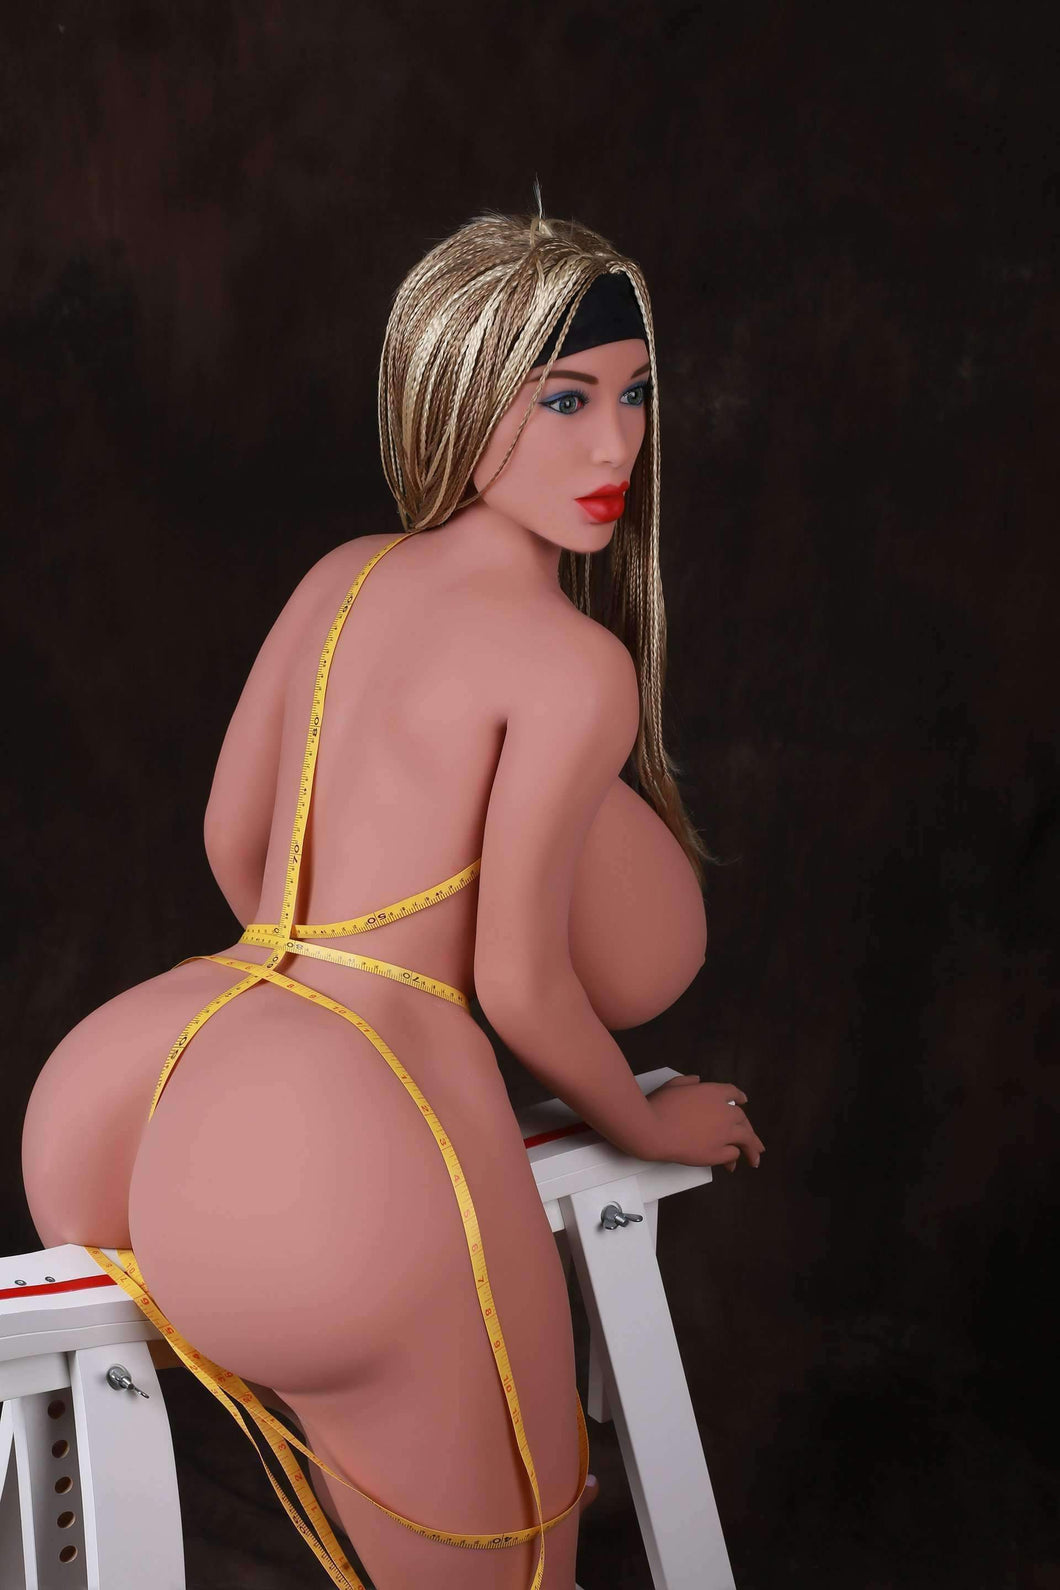 Chubby Catherine sex dolls